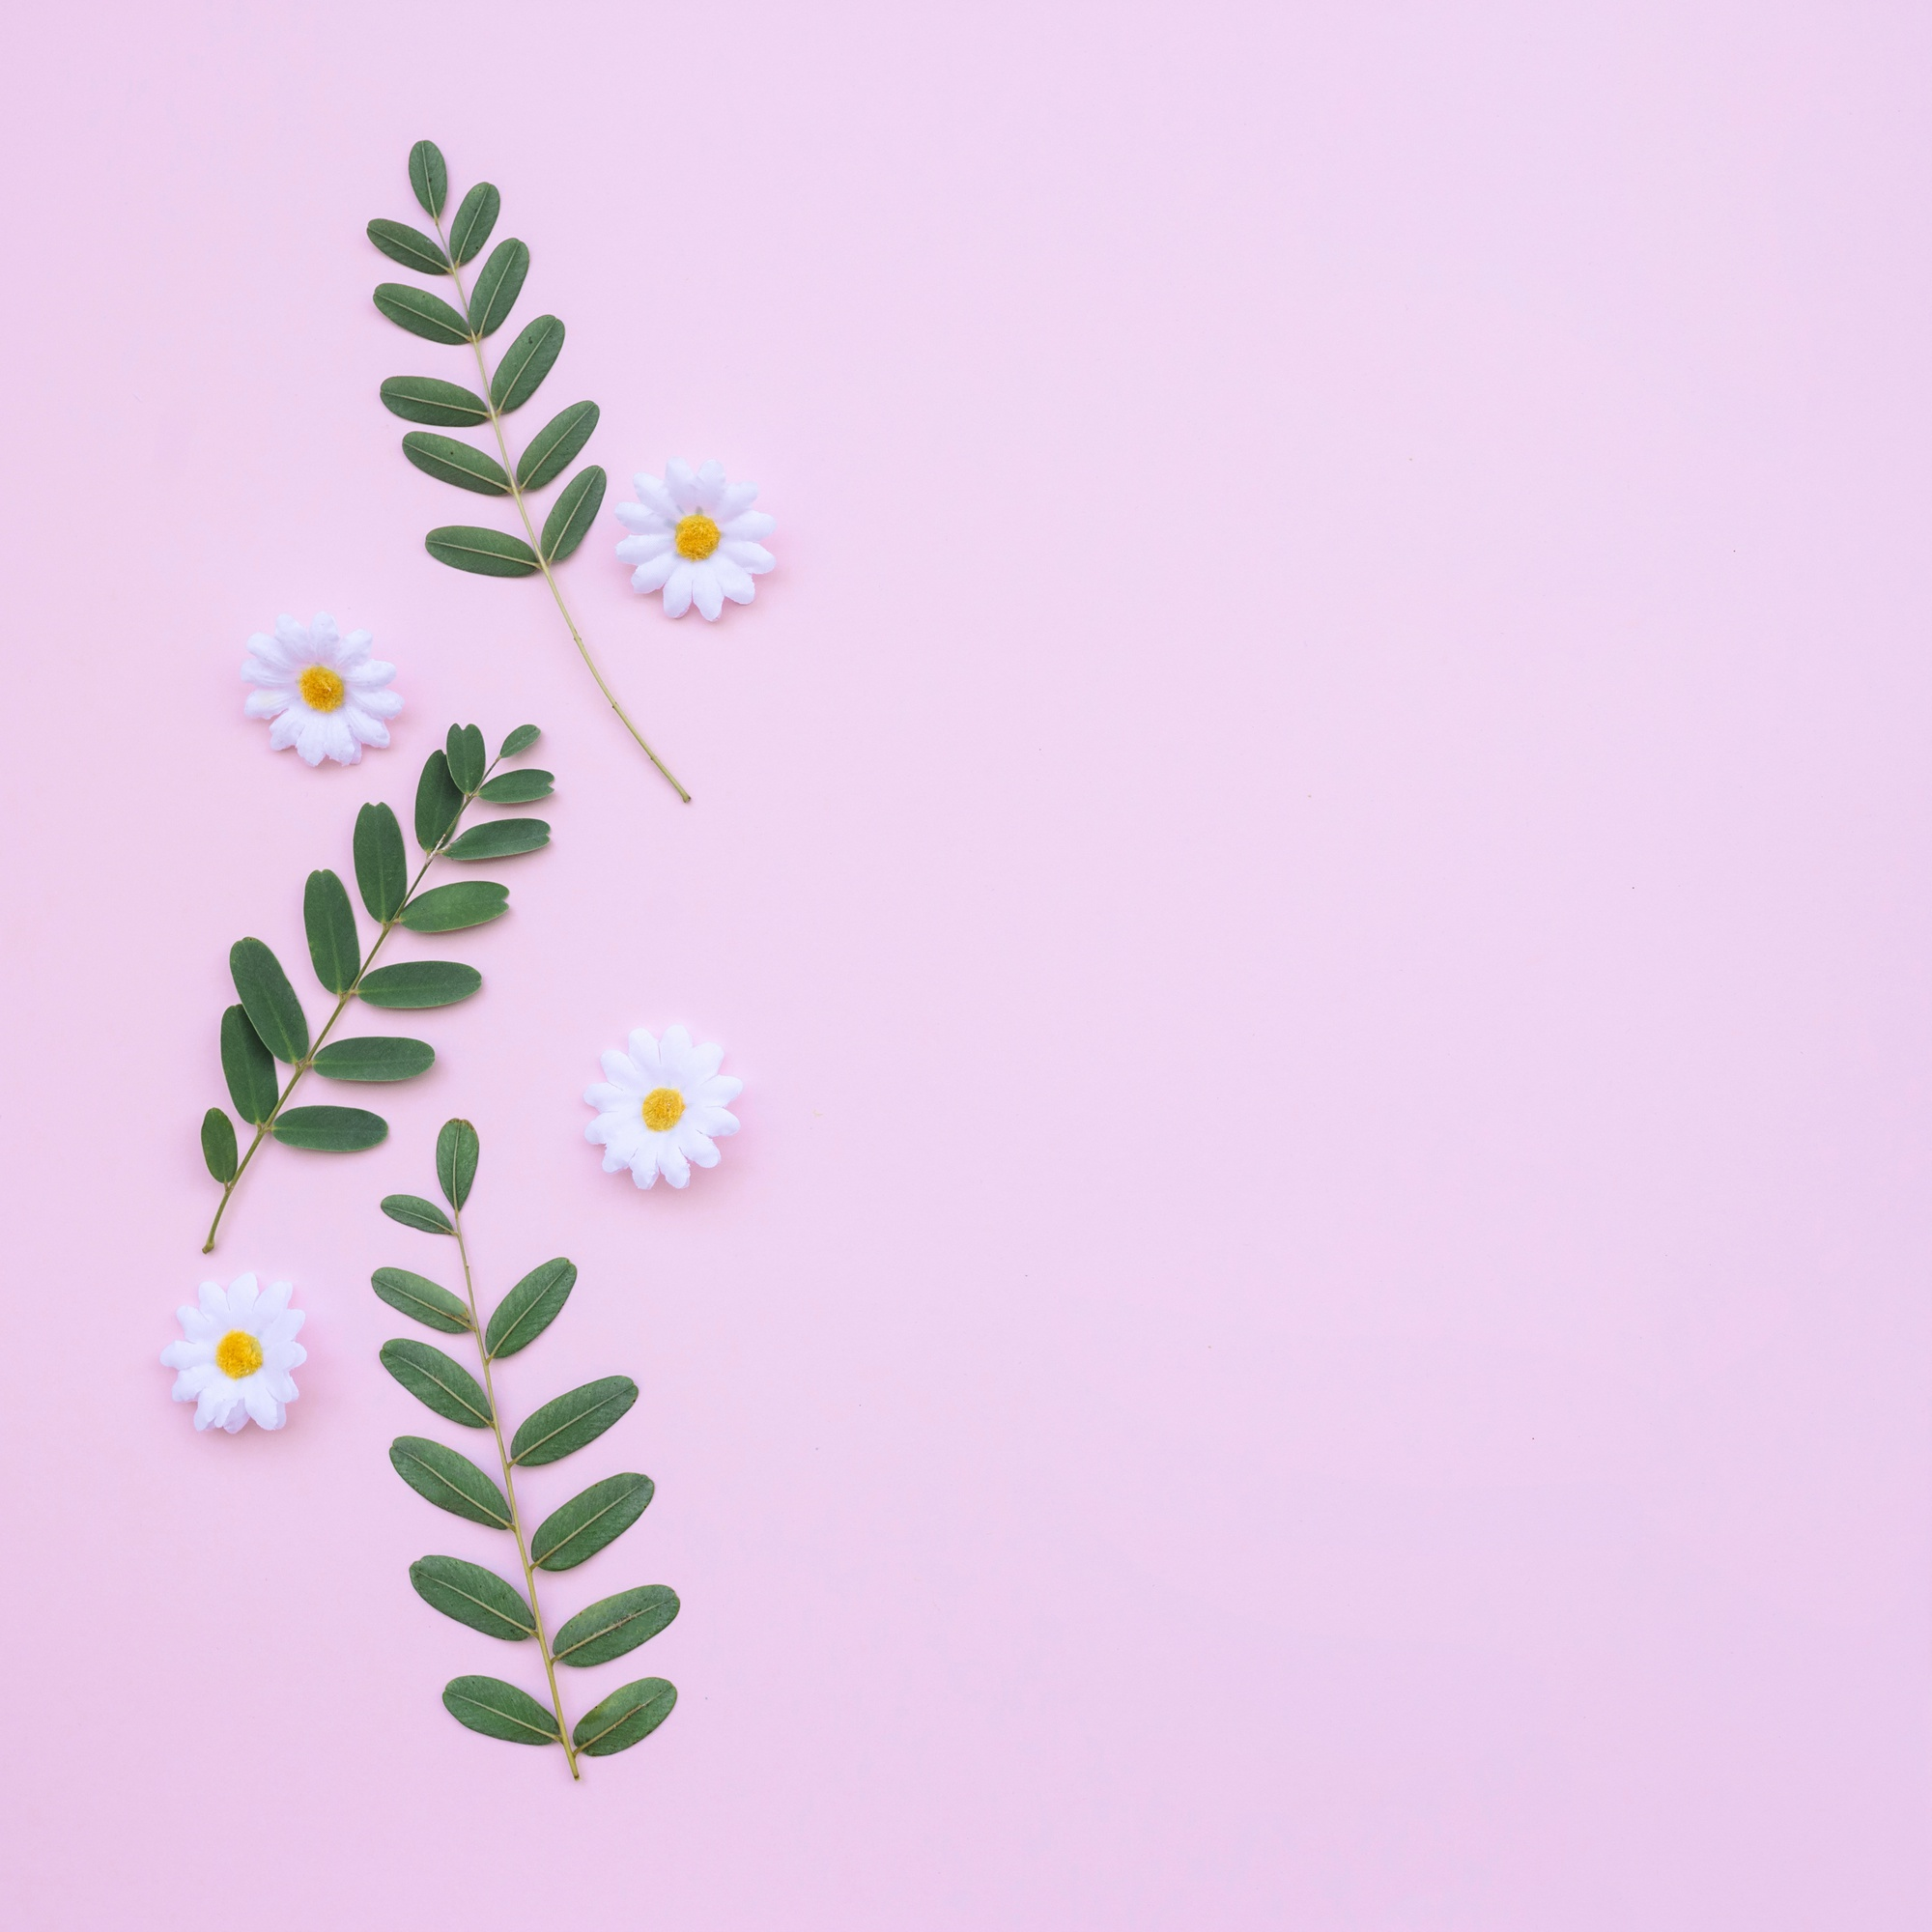 Beautiful daisies and leaves on light pink background